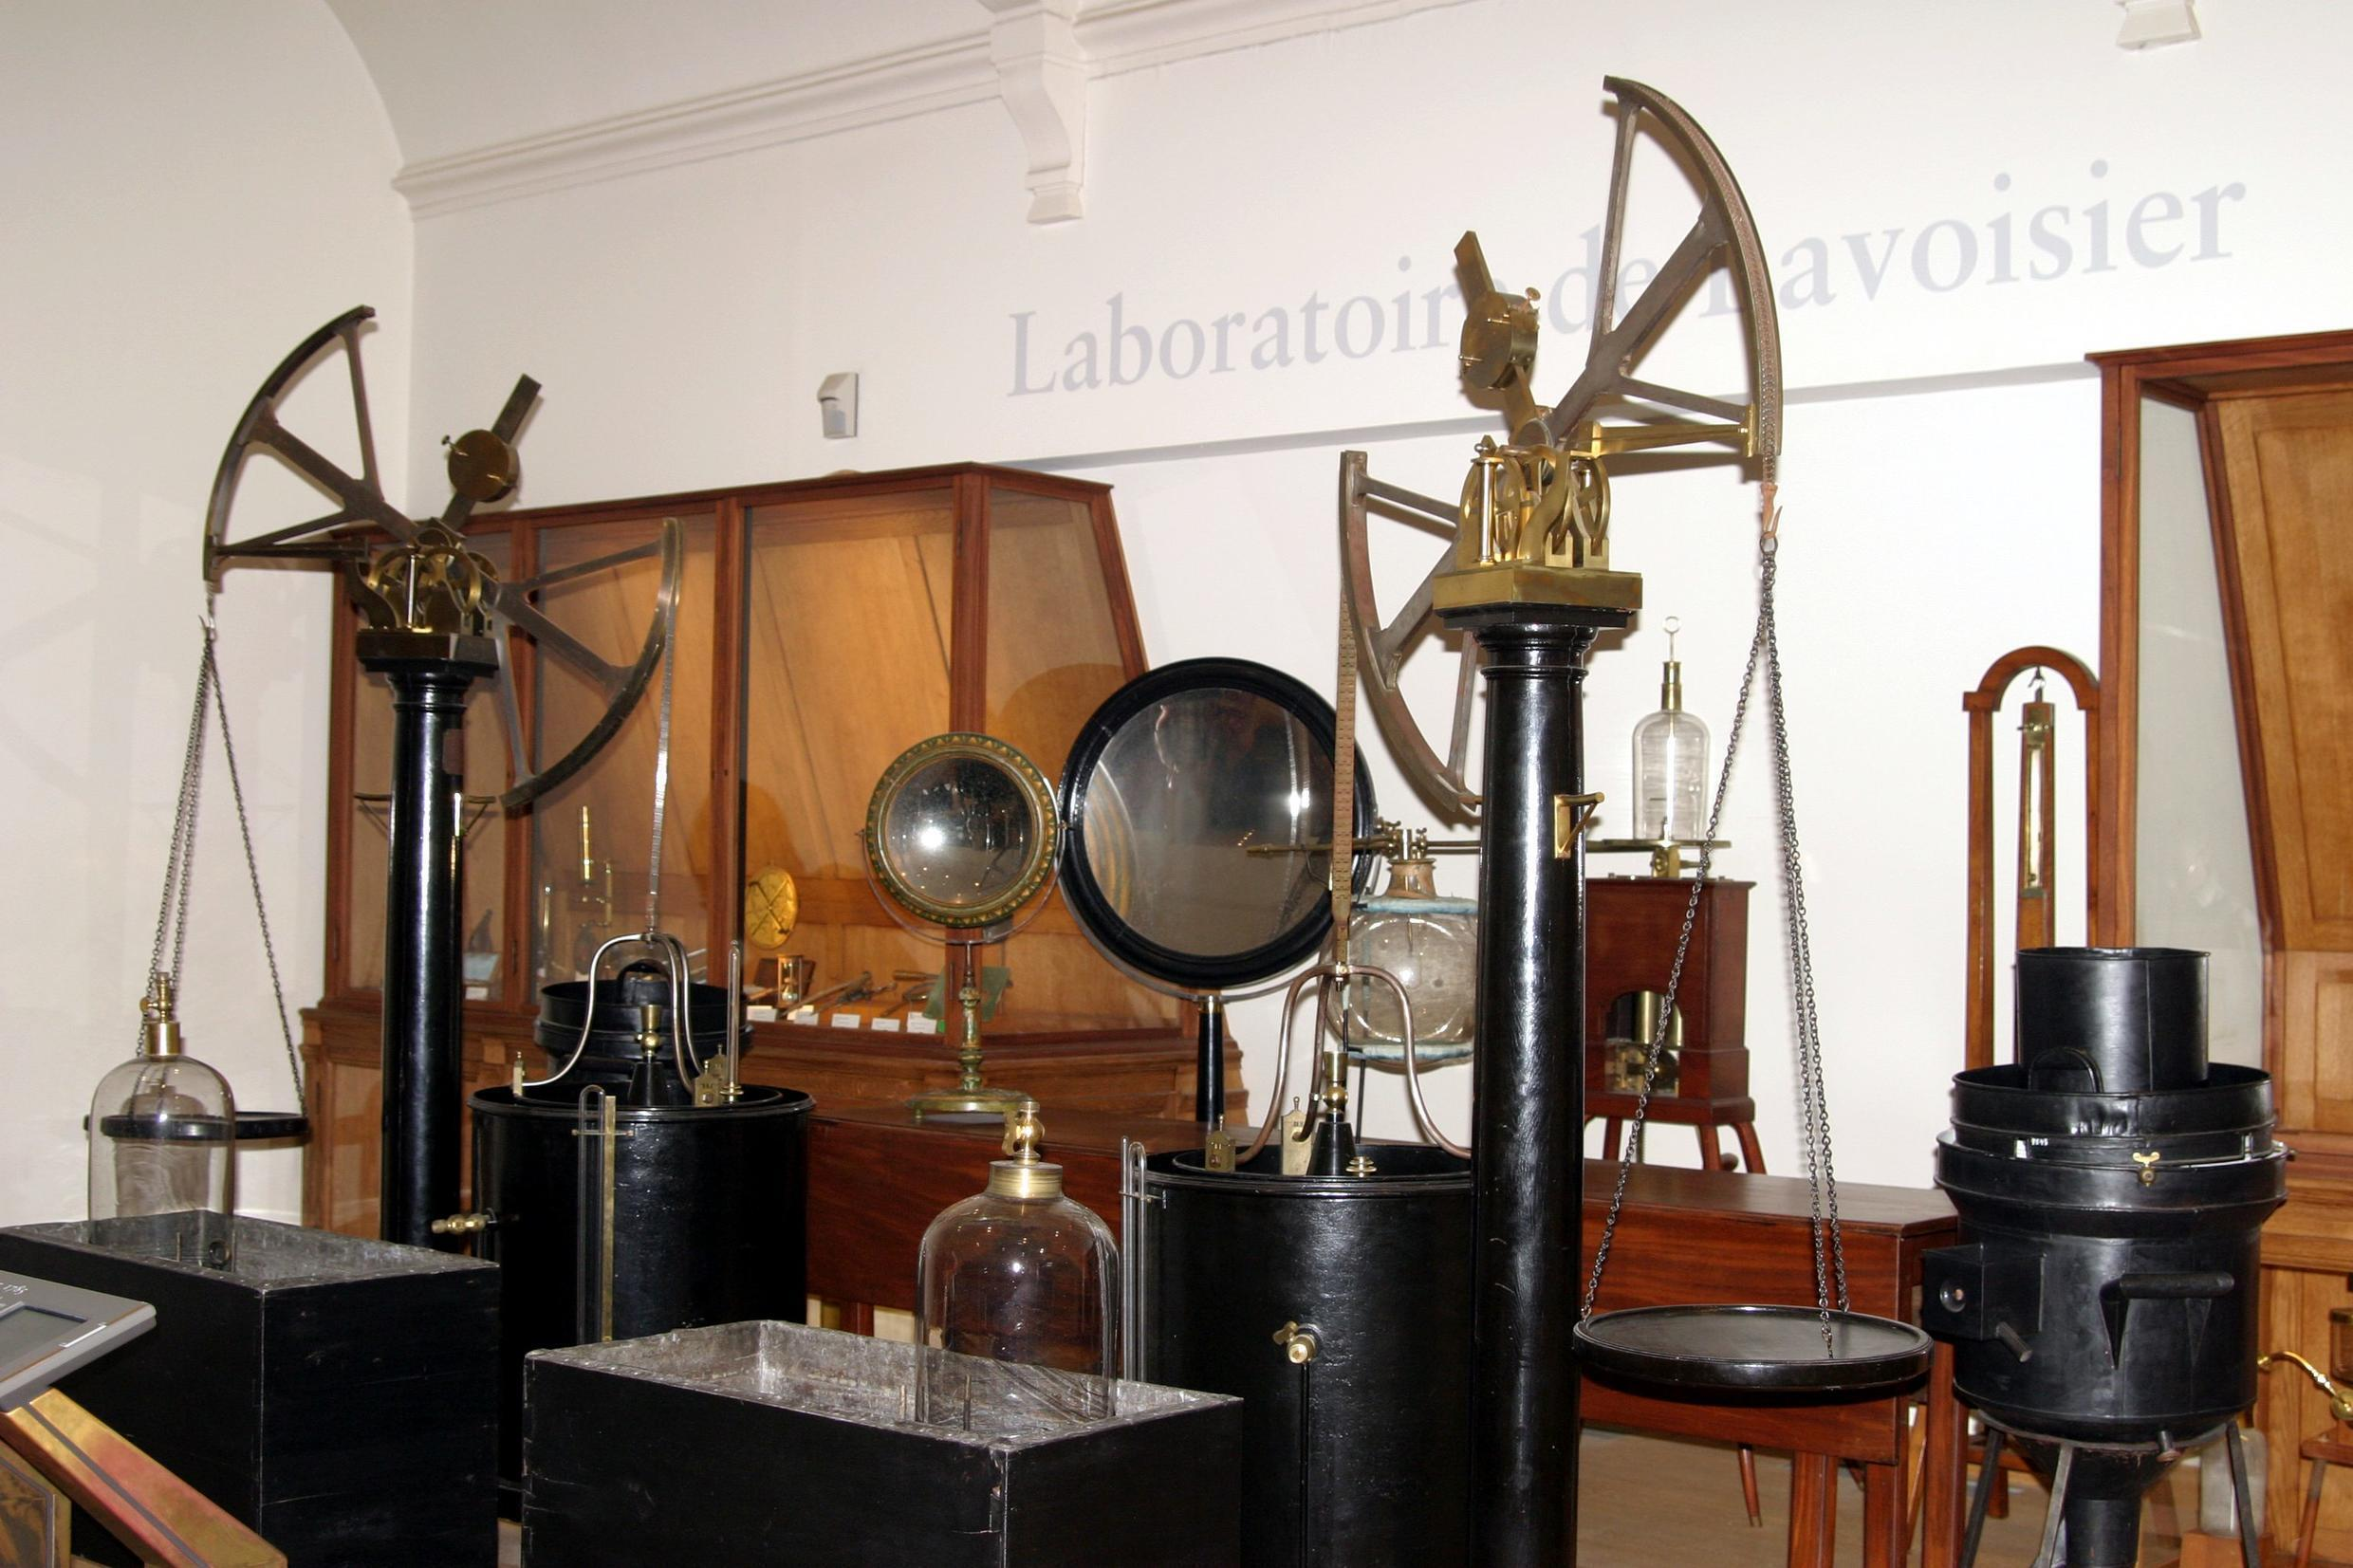 An apparatus of Lavoisier's experiment on display at the Musée des Arts et Metiers in Paris.